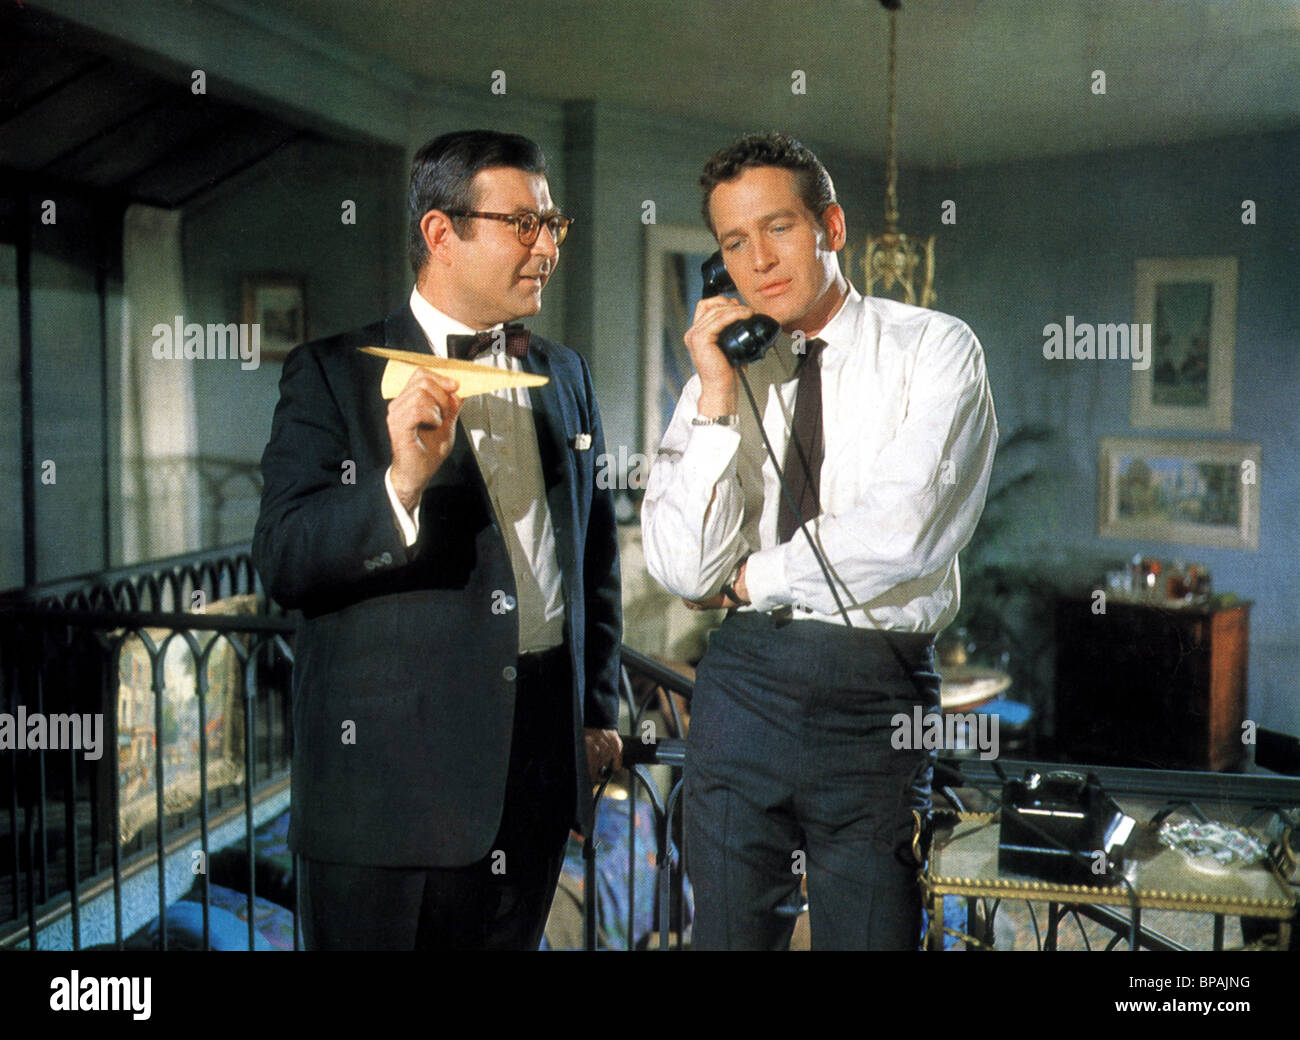 MARVIN KAPLAN & PAUL NEWMAN A NEW KIND OF LOVE (1963) - Stock Image